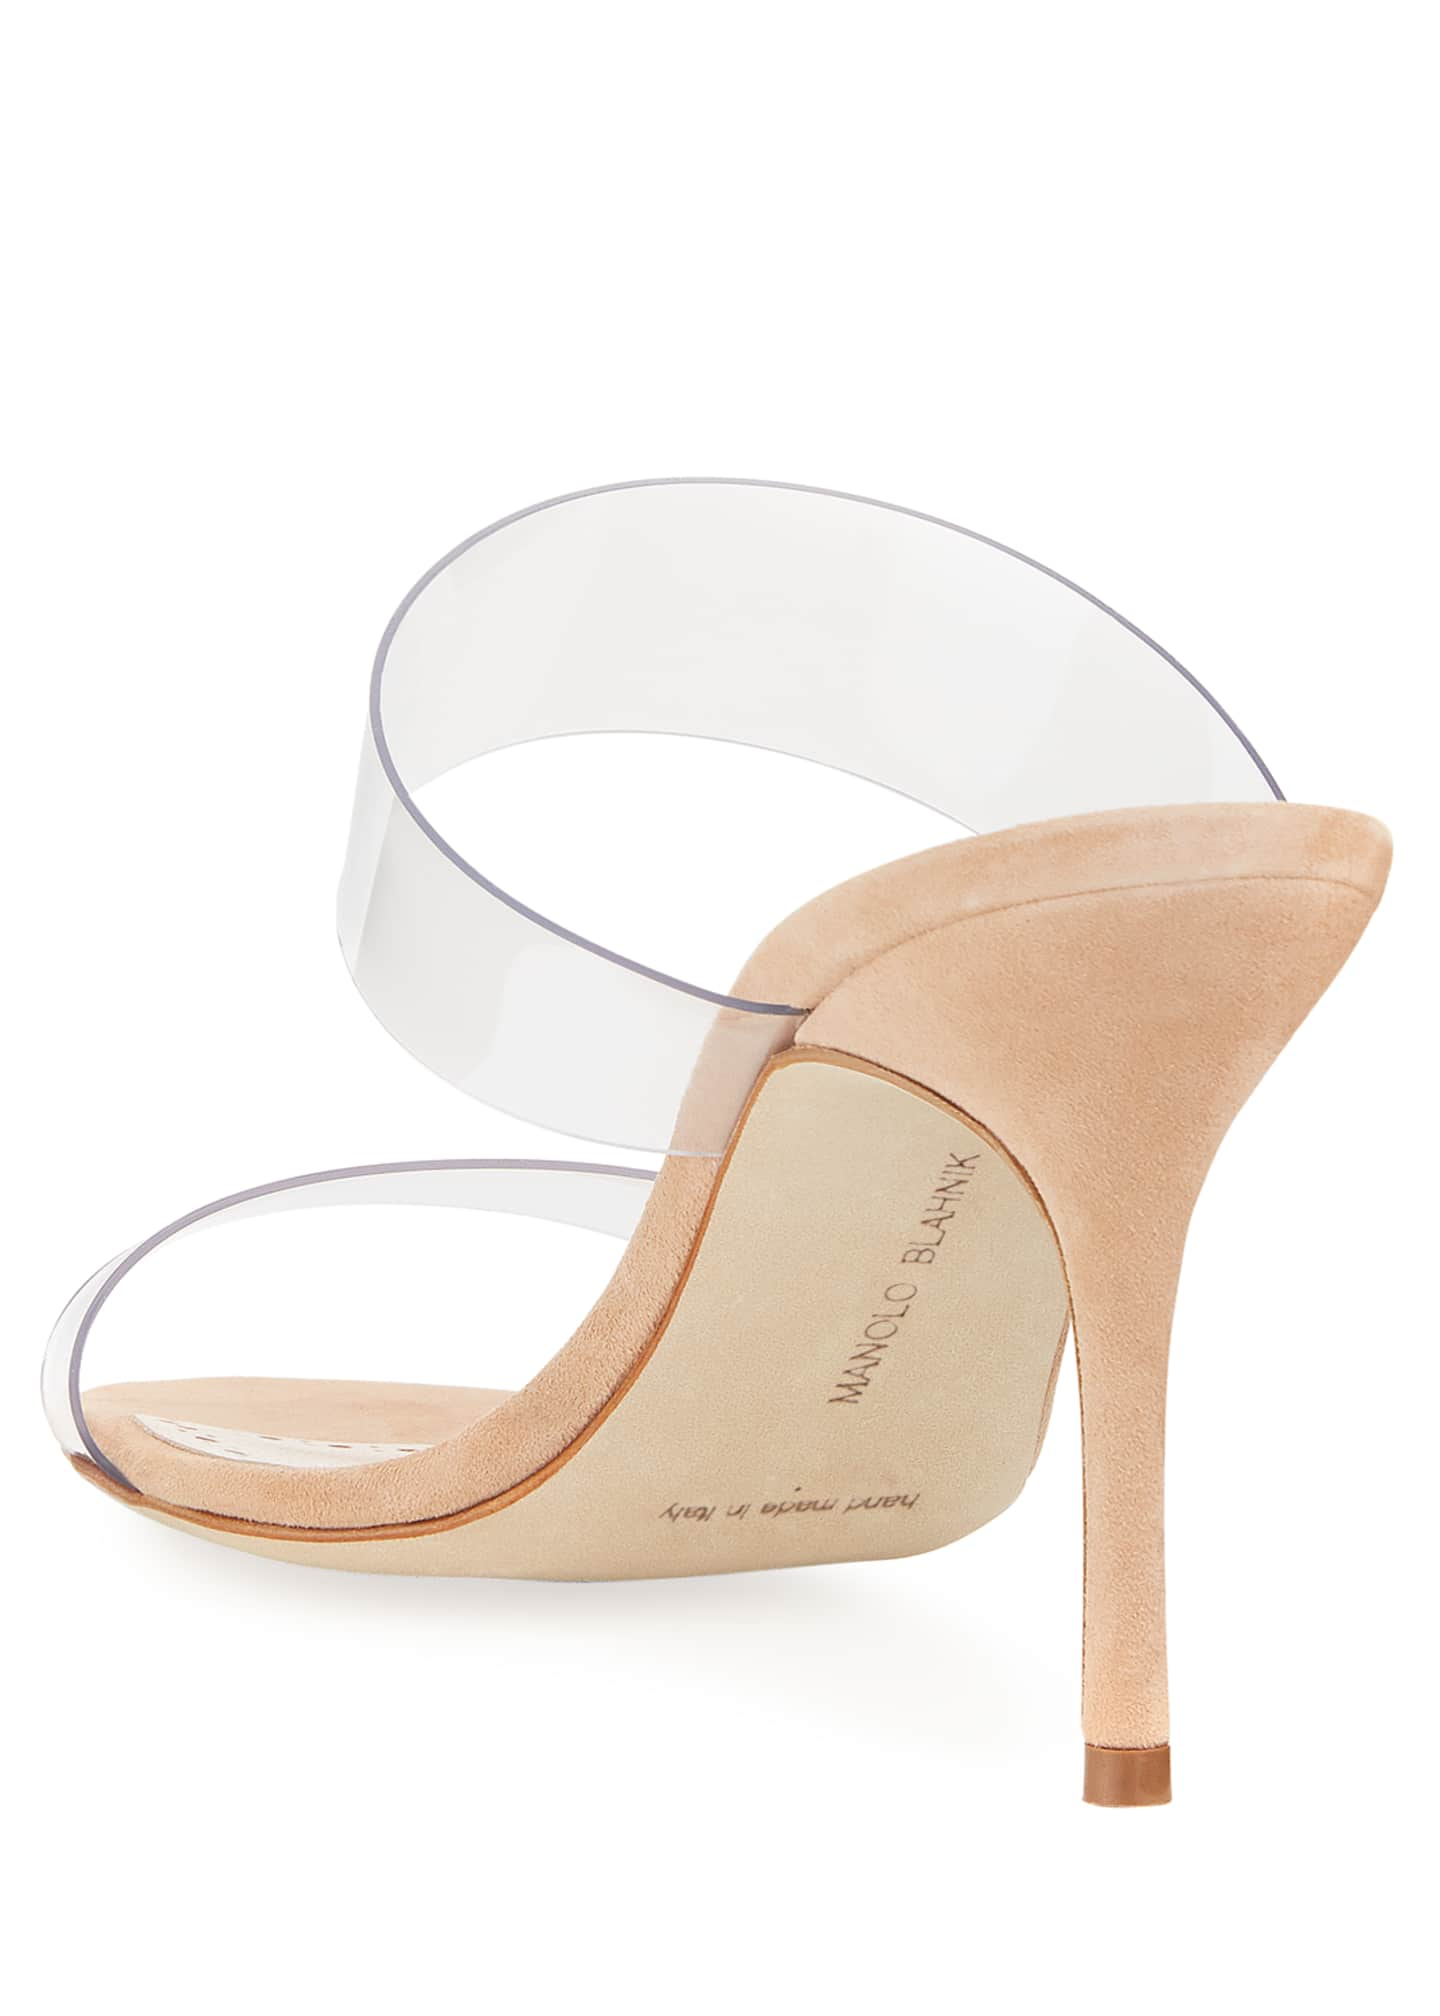 Image 5 of 6: Scolto PVC Two-Strap Sandals